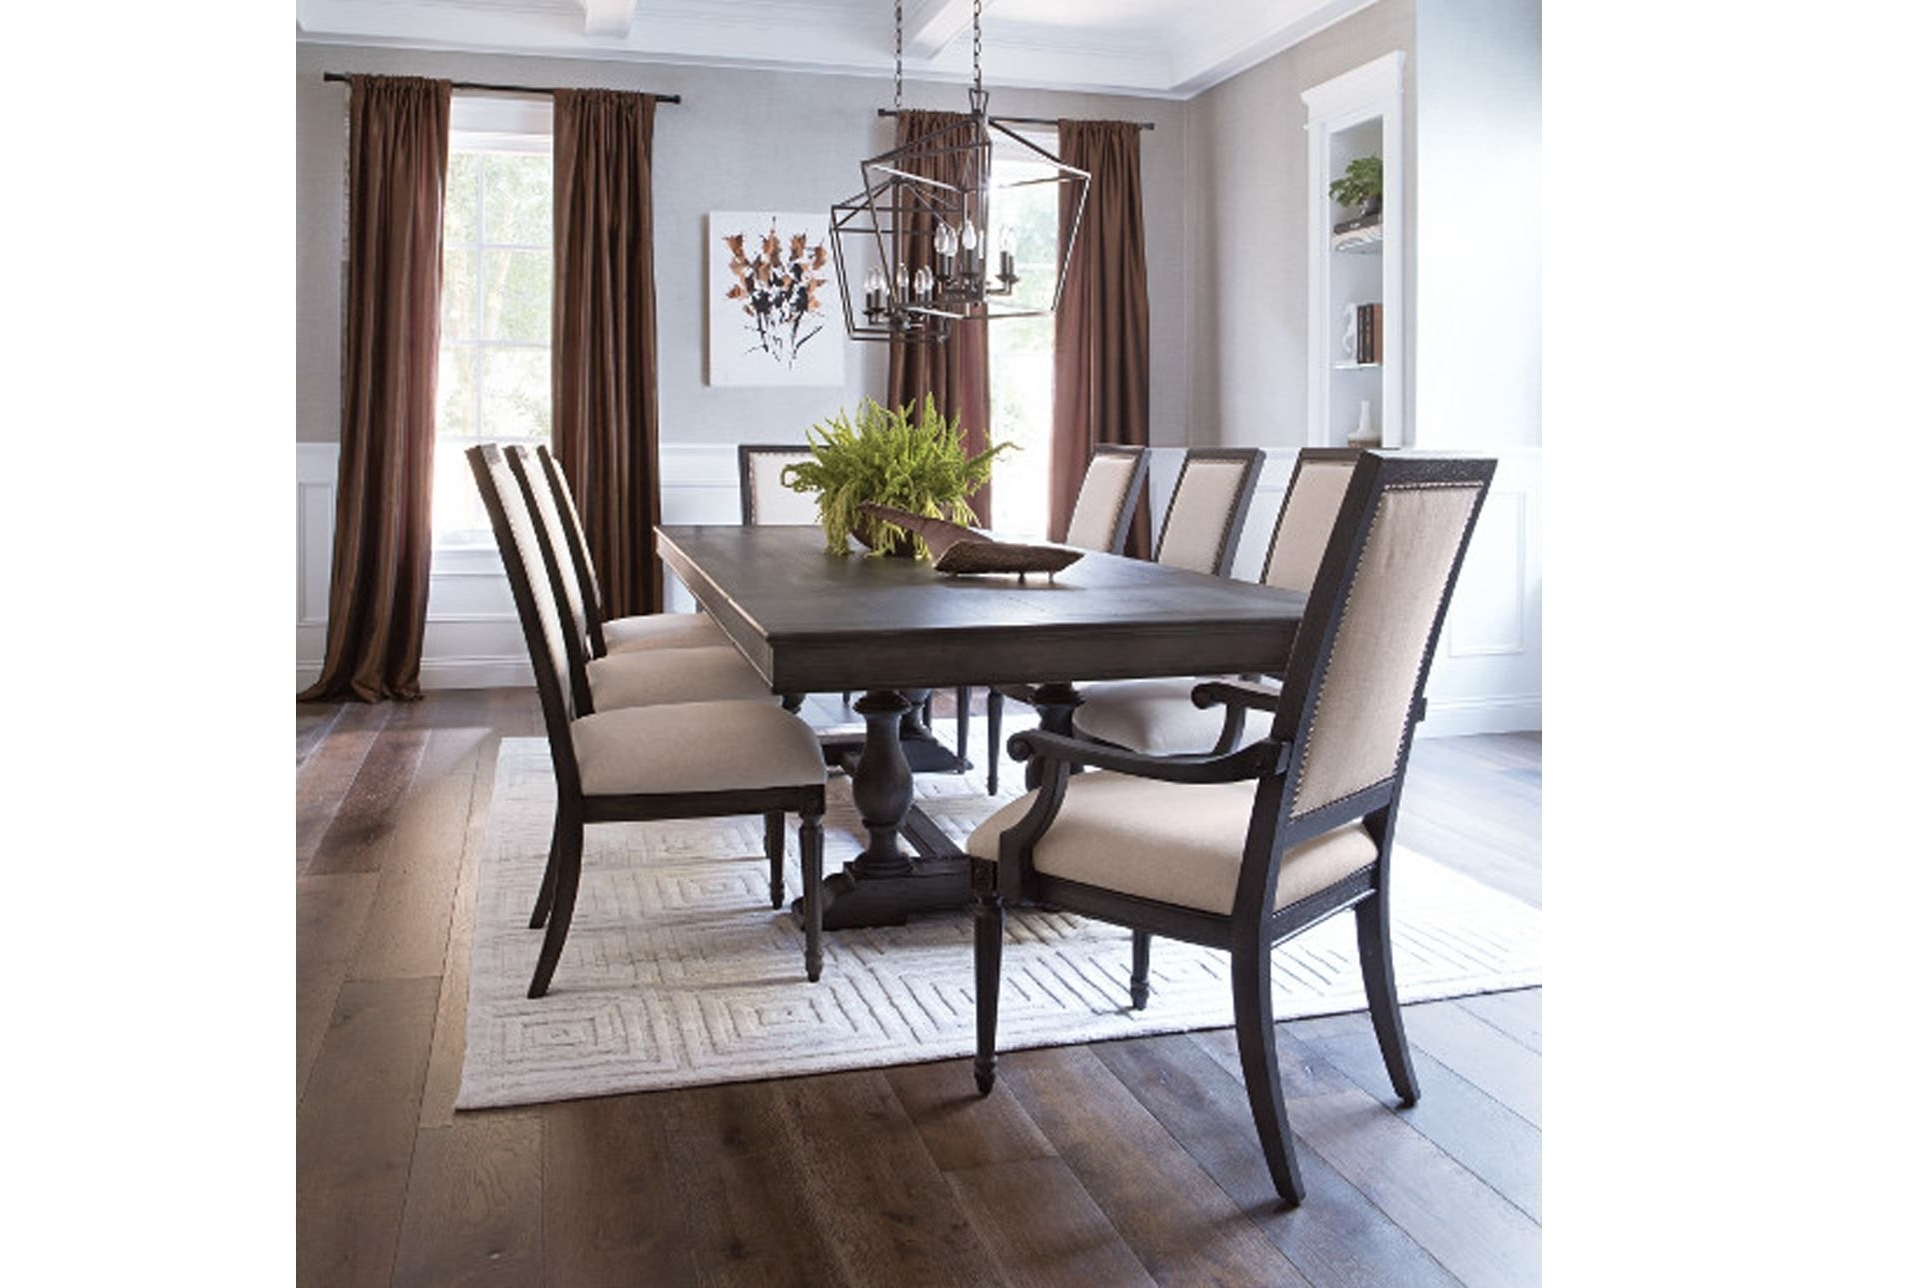 Chapleau Ii Extension Dining Tables In Popular Chapleau 9 Piece Extension Dining Set, Off White (View 3 of 25)